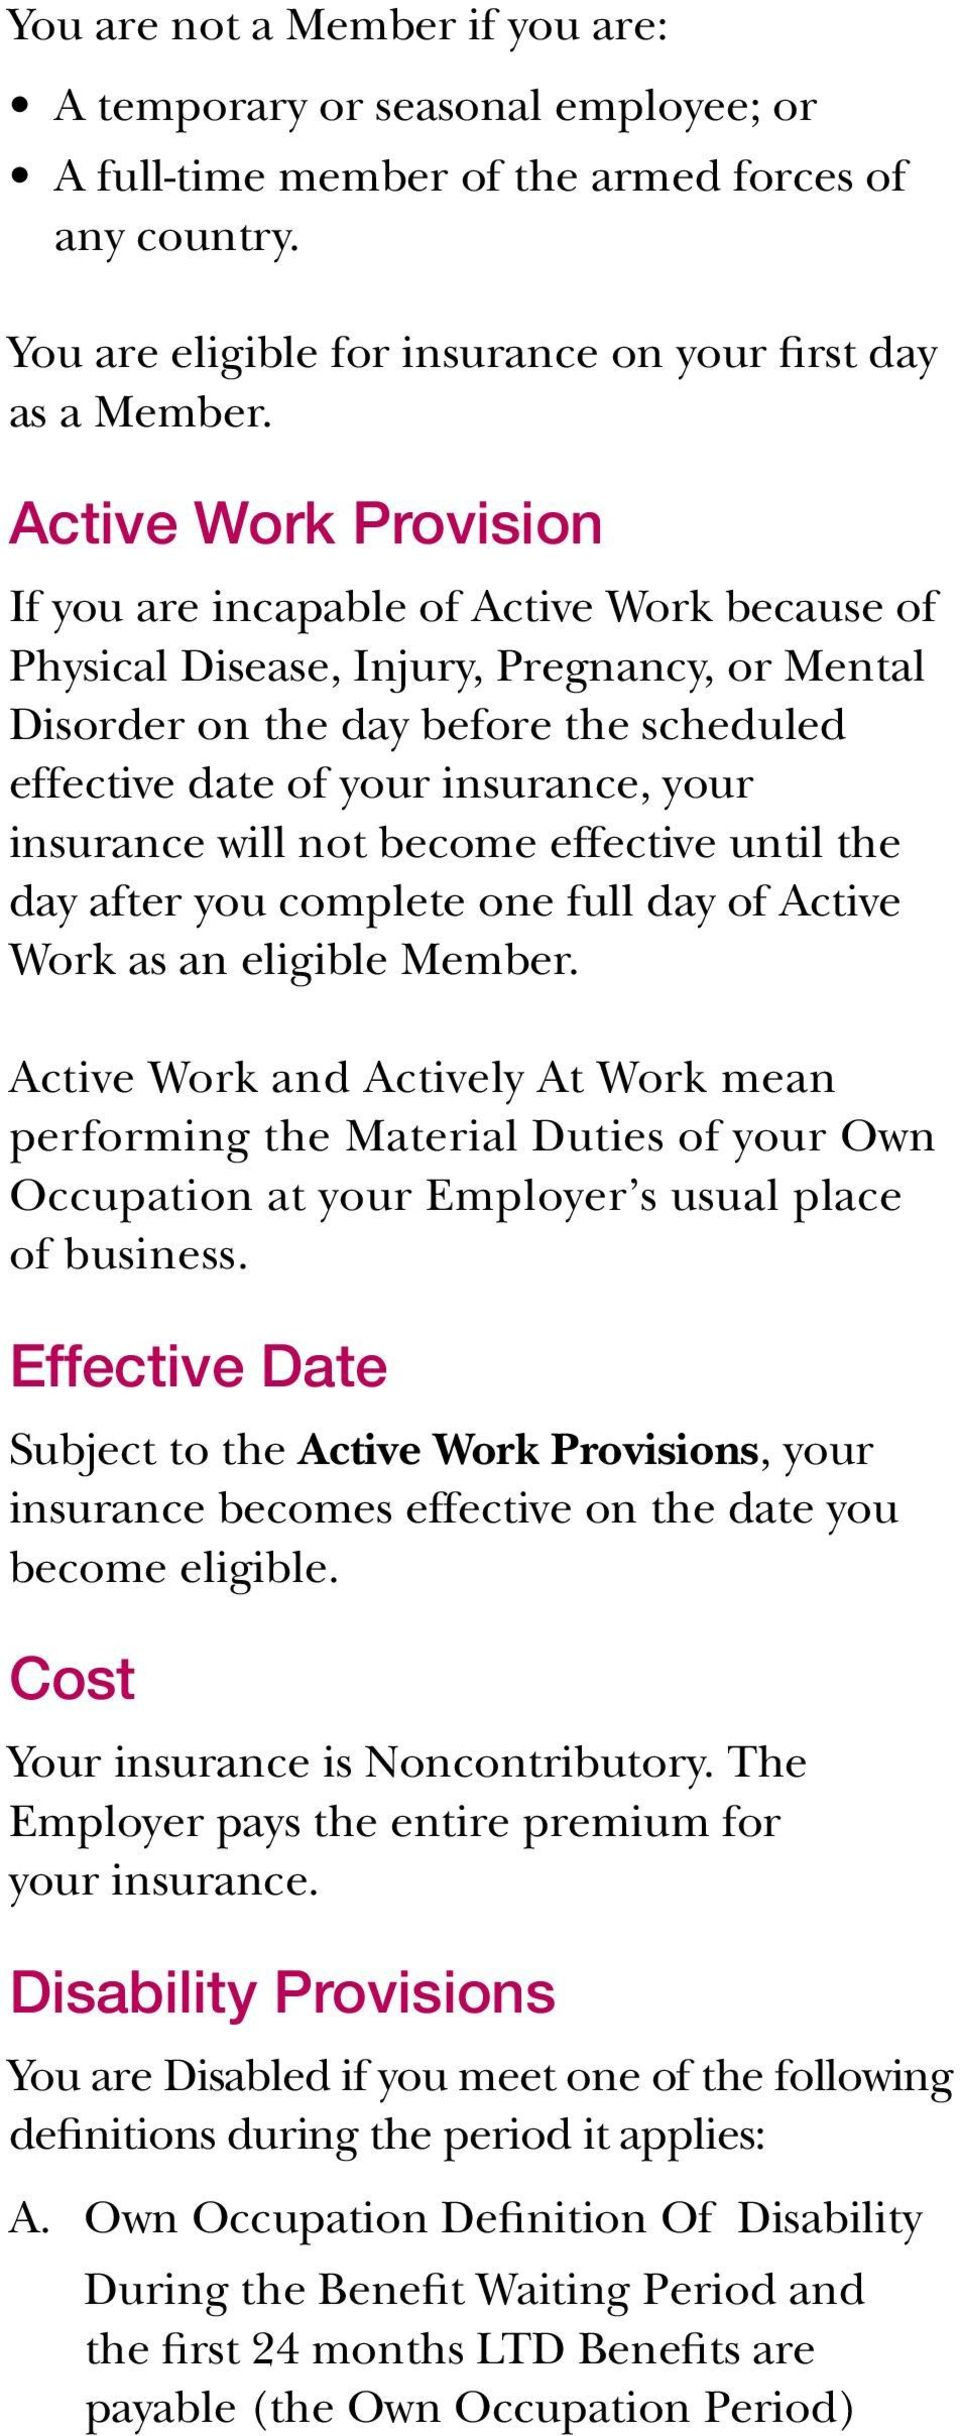 insurance will not become effective until the day after you complete one full day of Active Work as an eligible Member.